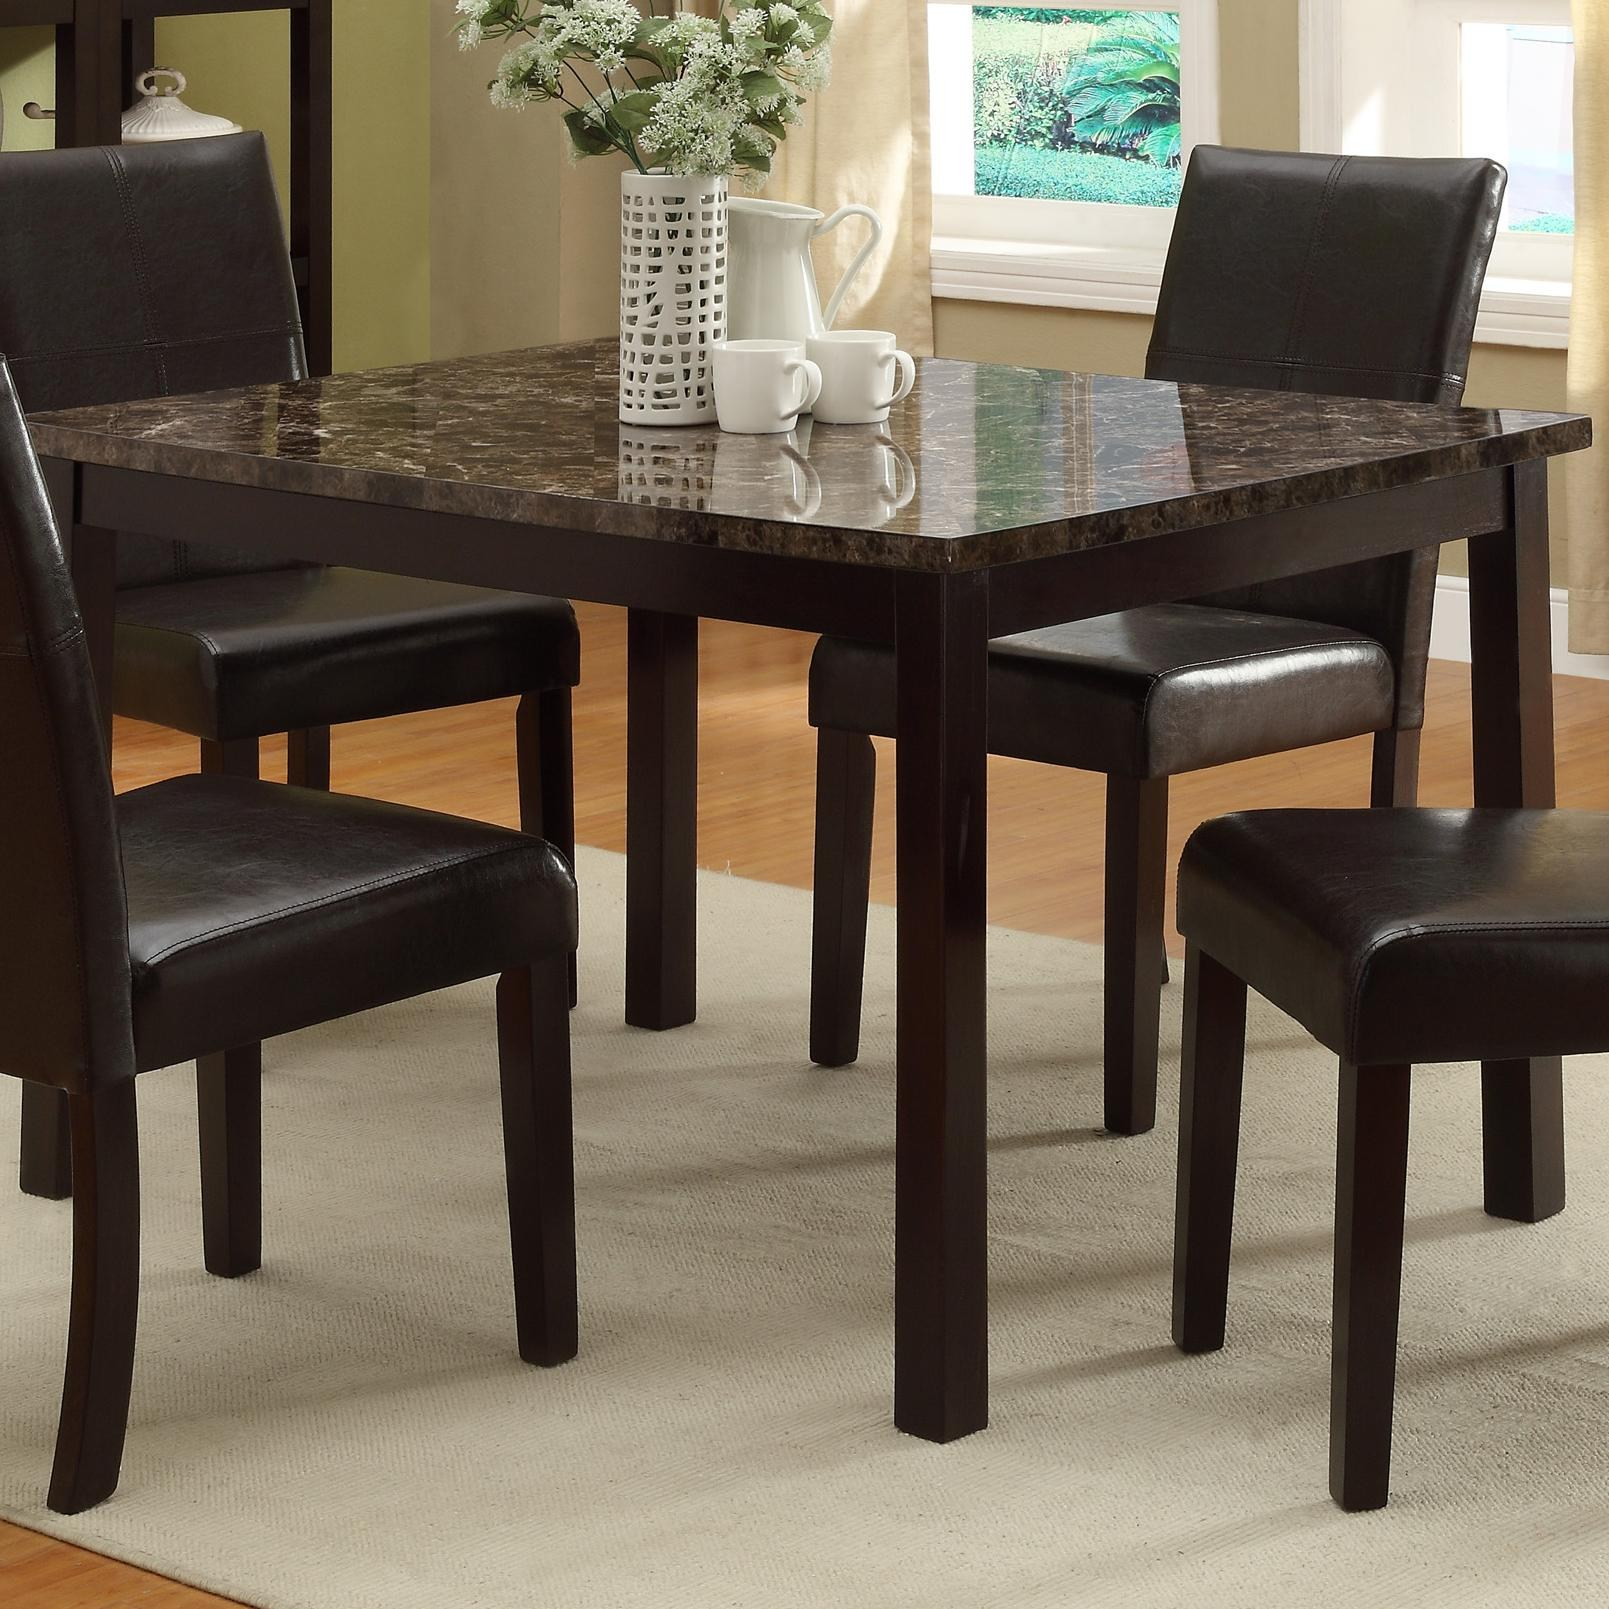 5pc Dining Room Table w4 Side Chairs Uph Black Seat Back